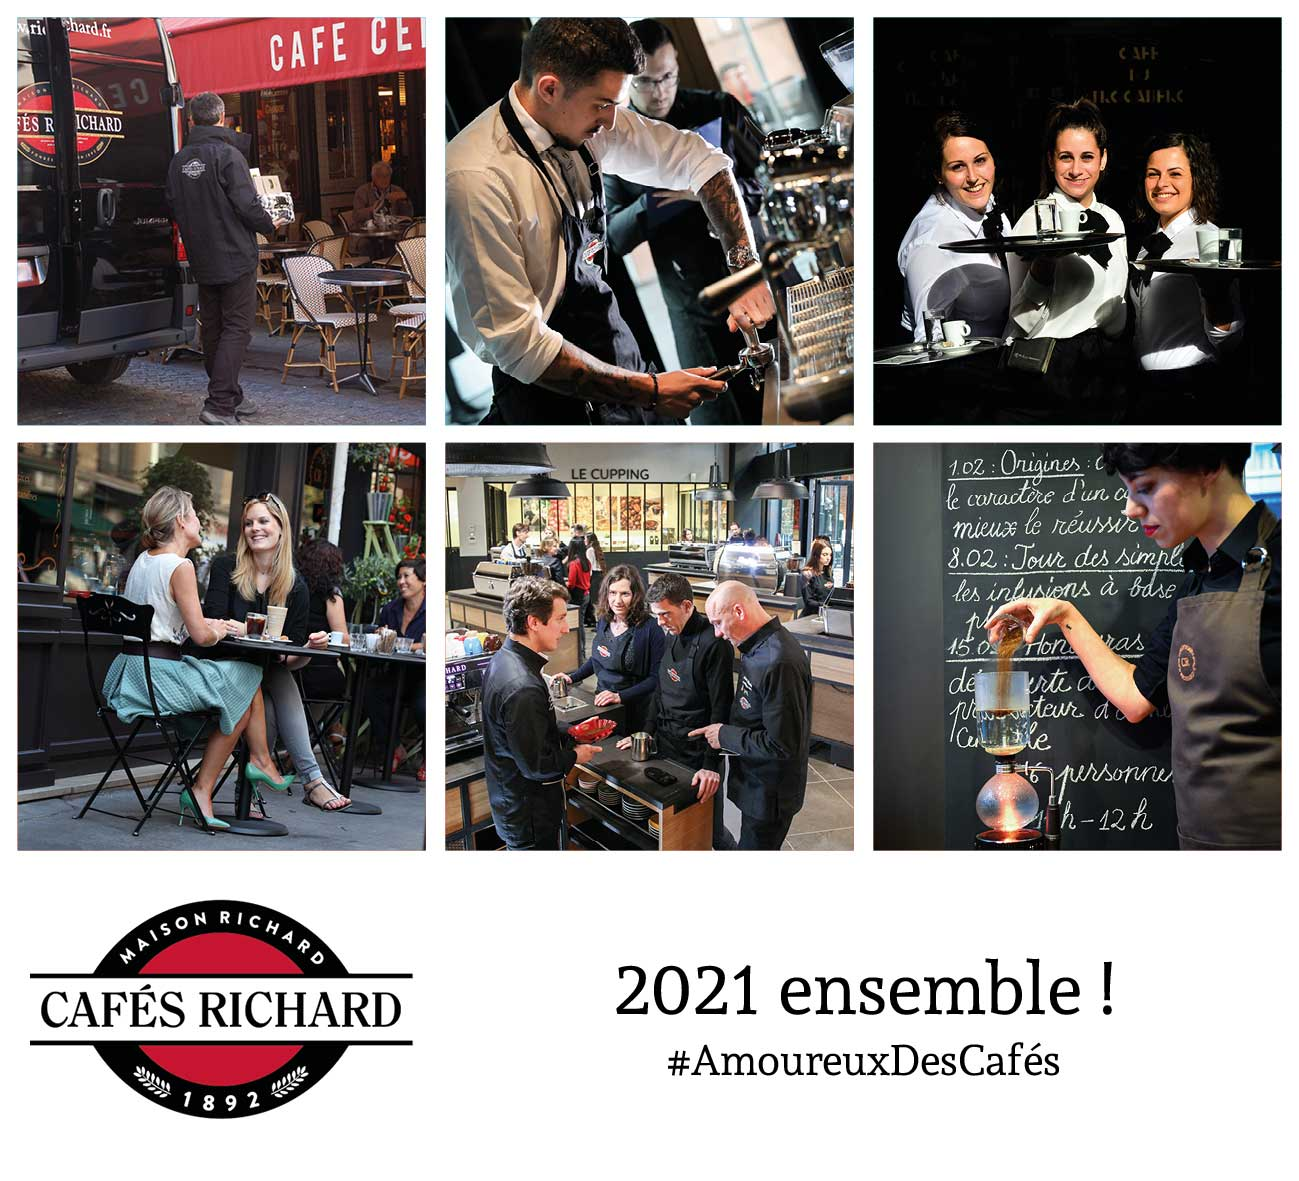 Voeux 2021 Cafés Richard - ensemble !